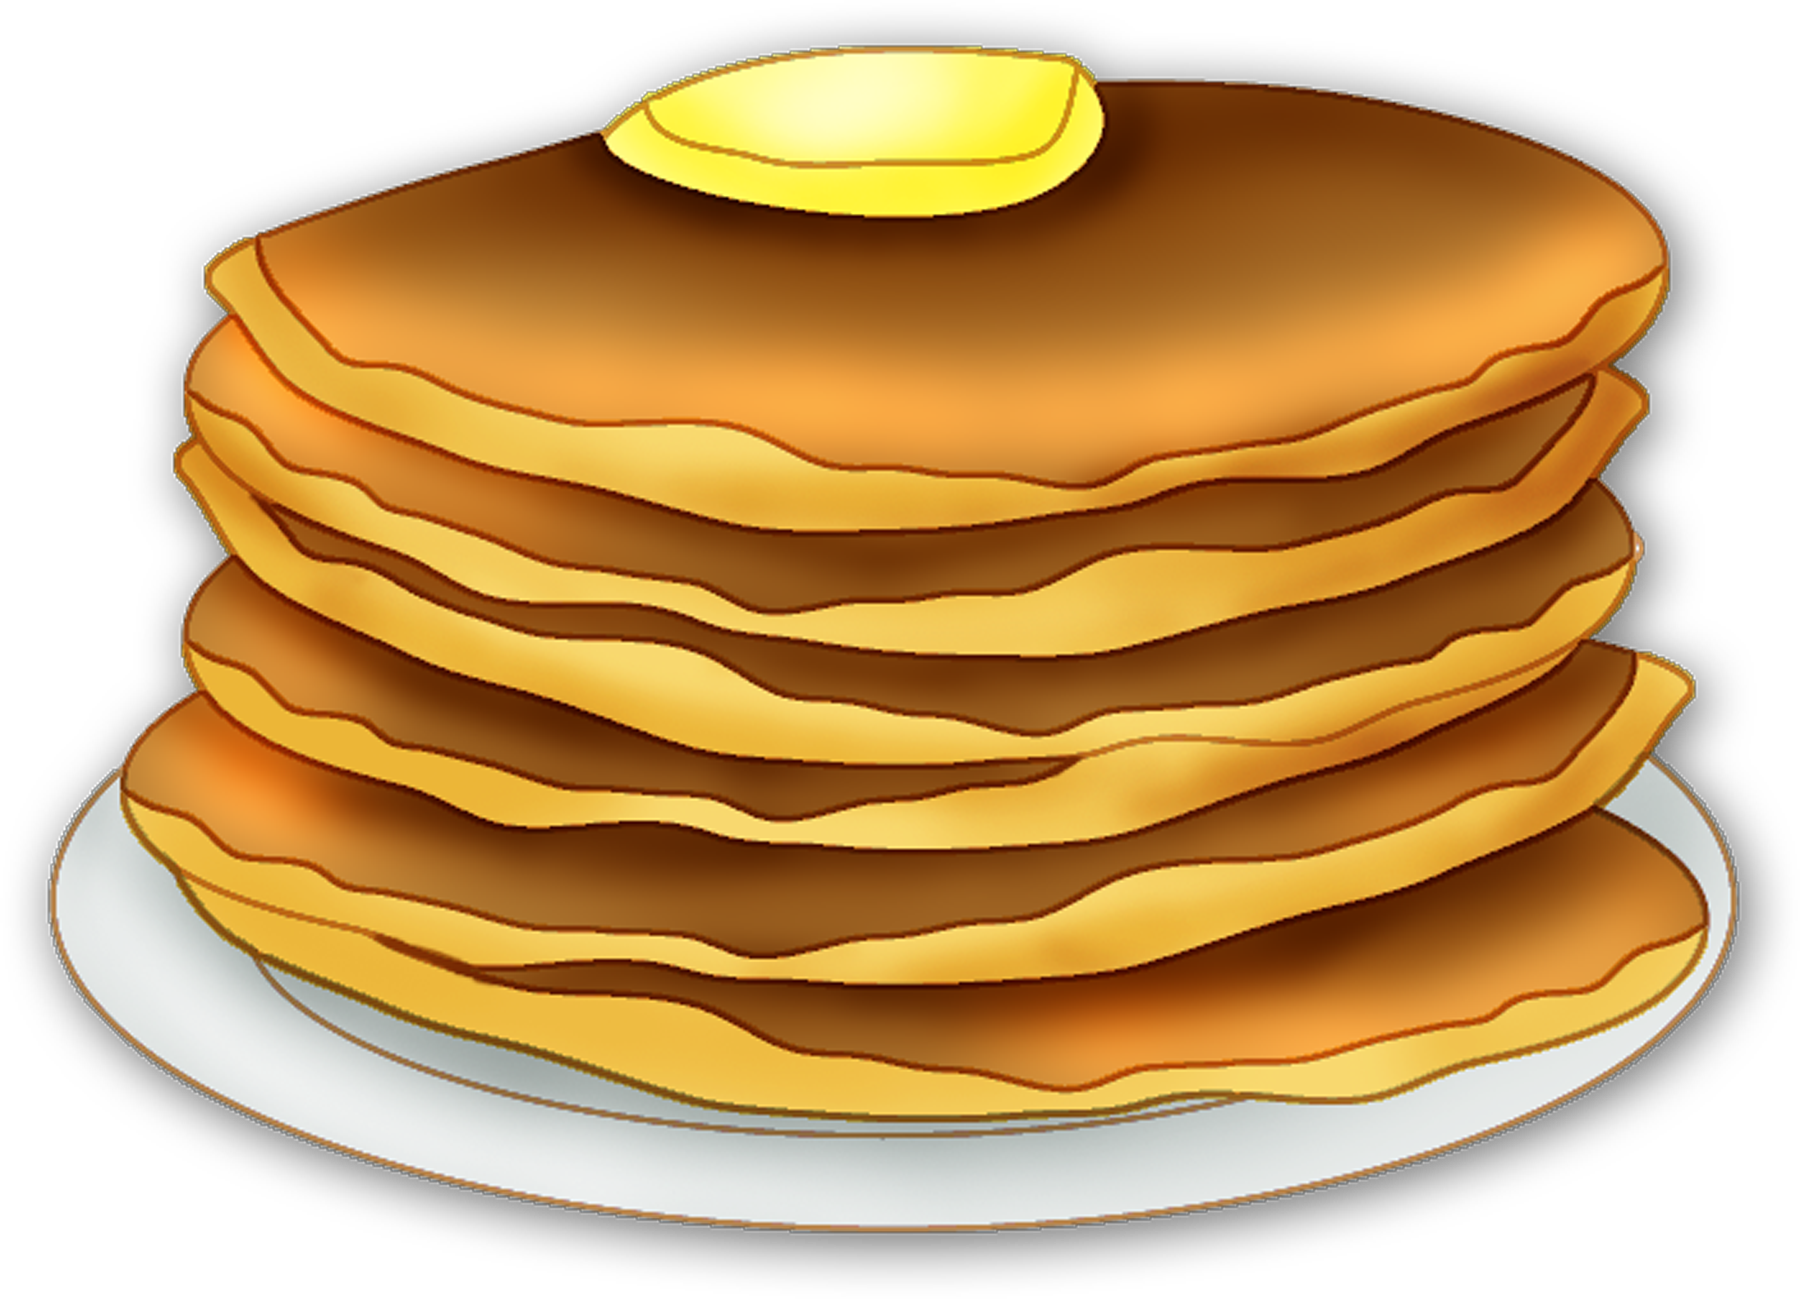 Free Pancake Mix Cliparts, Download Free Clip Art, Free Clip.